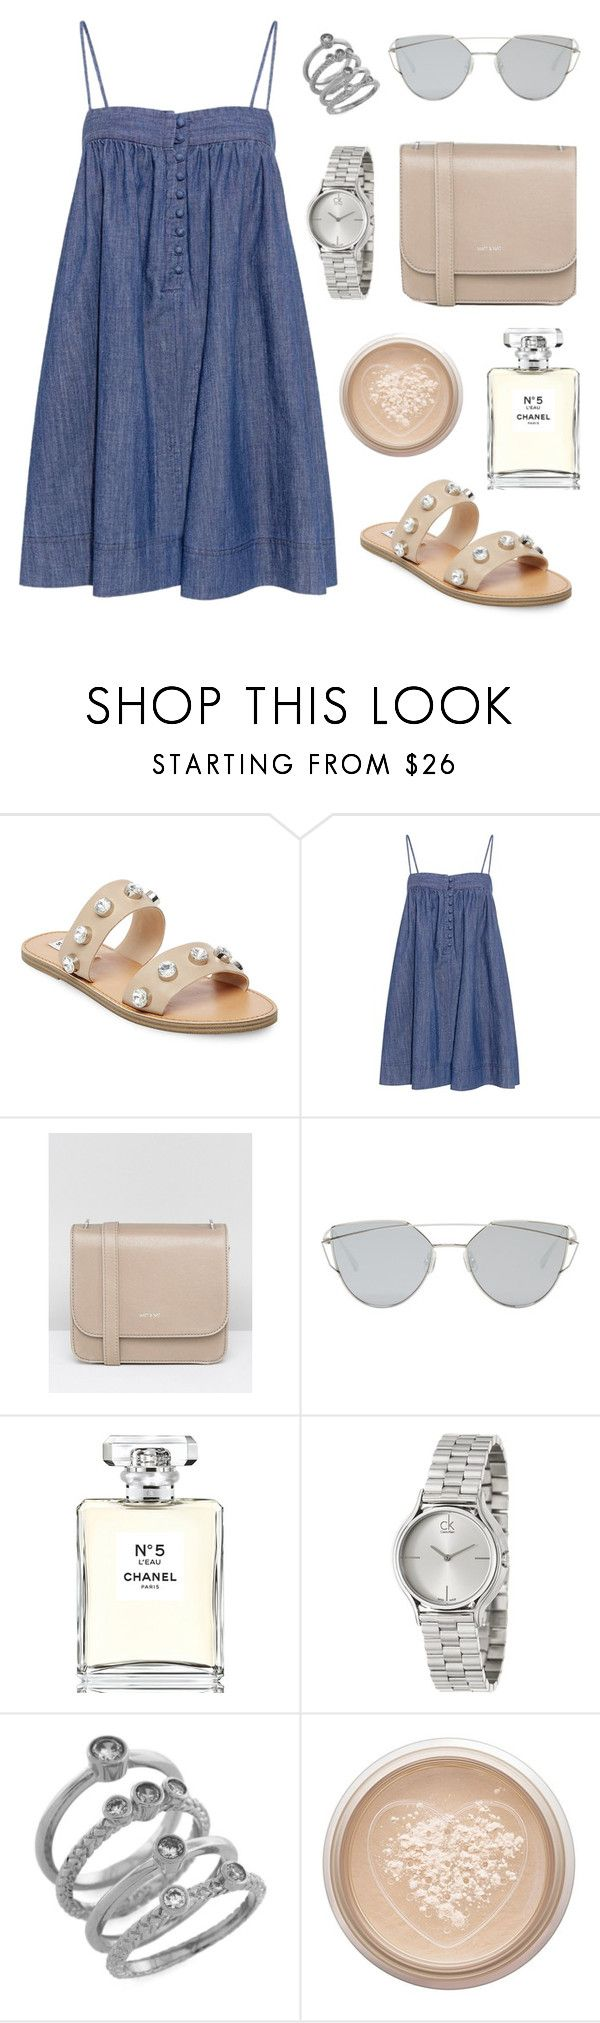 """""""Summer Fling"""" by tasha-m-e ❤ liked on Polyvore featuring Steve Madden, Apiece Apart, Matt & Nat, Gentle Monster, Chanel, Calvin Klein, Cole Haan and Too Faced Cosmetics"""